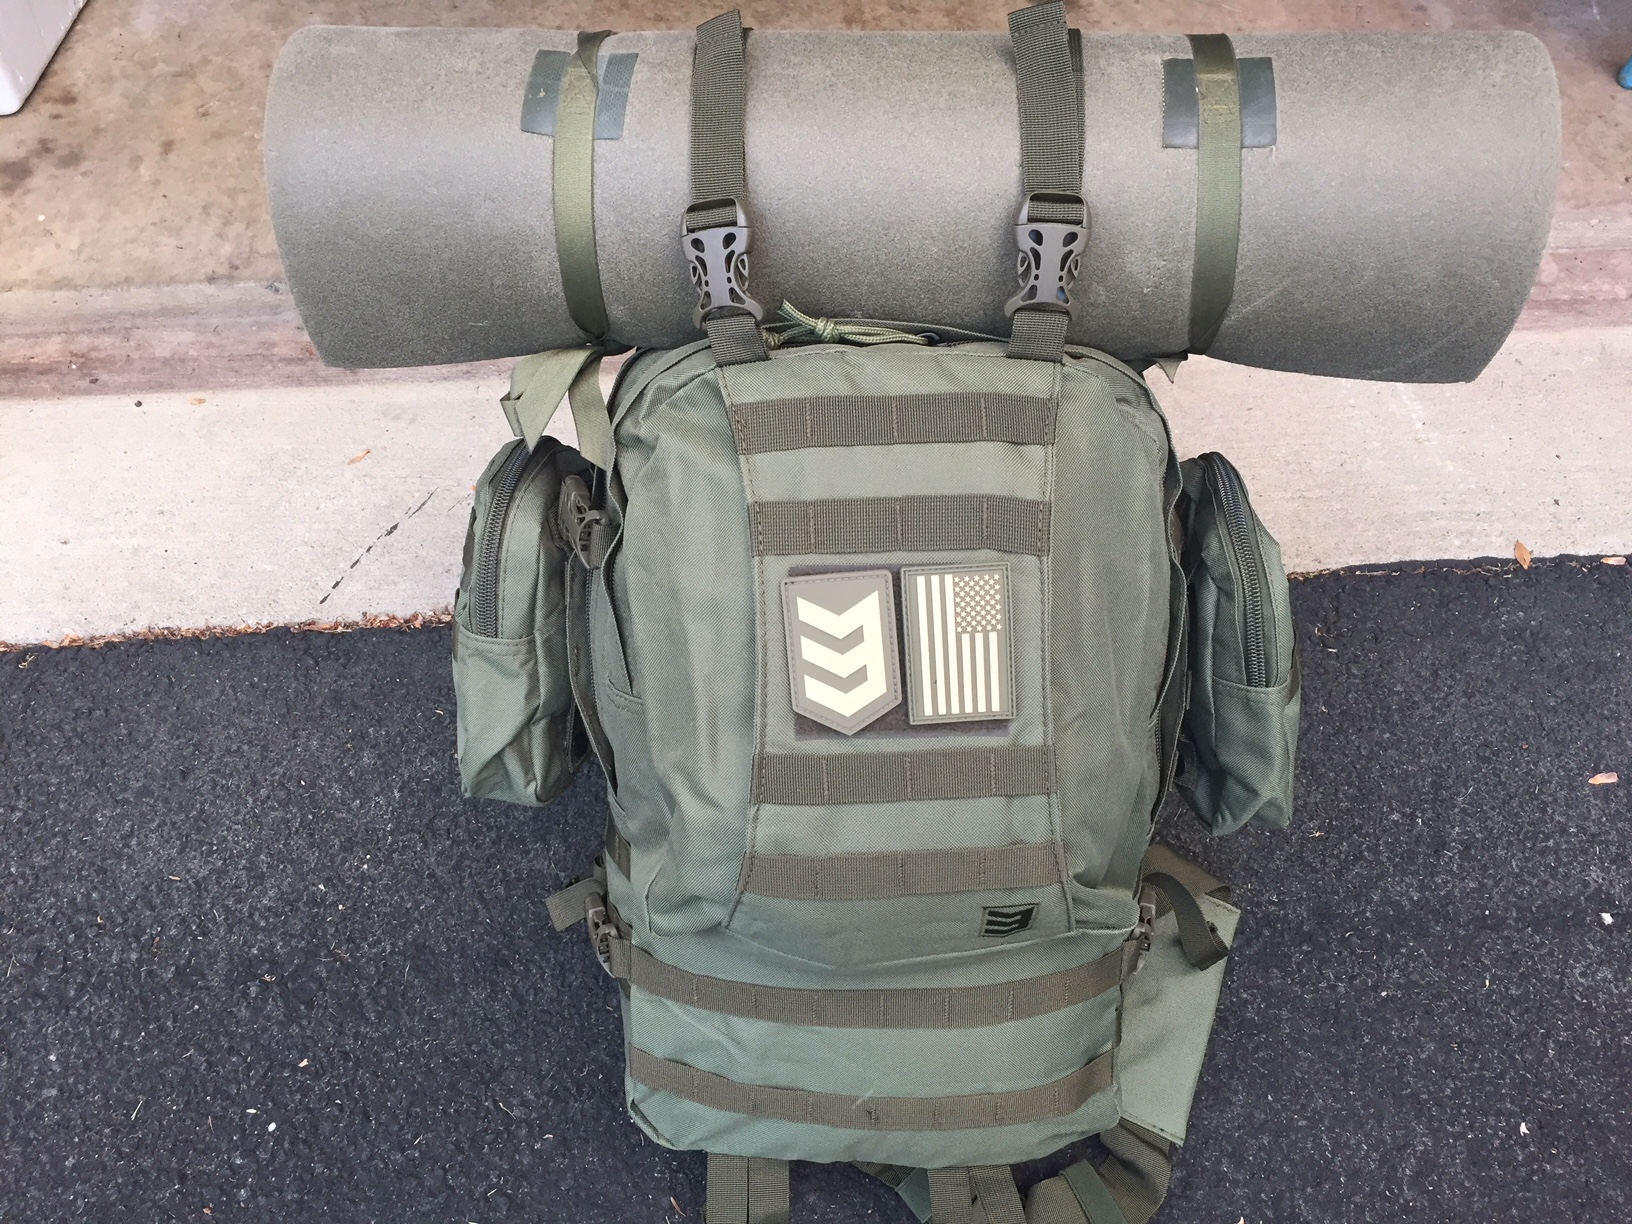 35ff2aebff0d The Paratus 3 Day Operator s Pack has the ability to integrate a hydration  bladder and is not only MOLLE compatible but has multiple D-rings